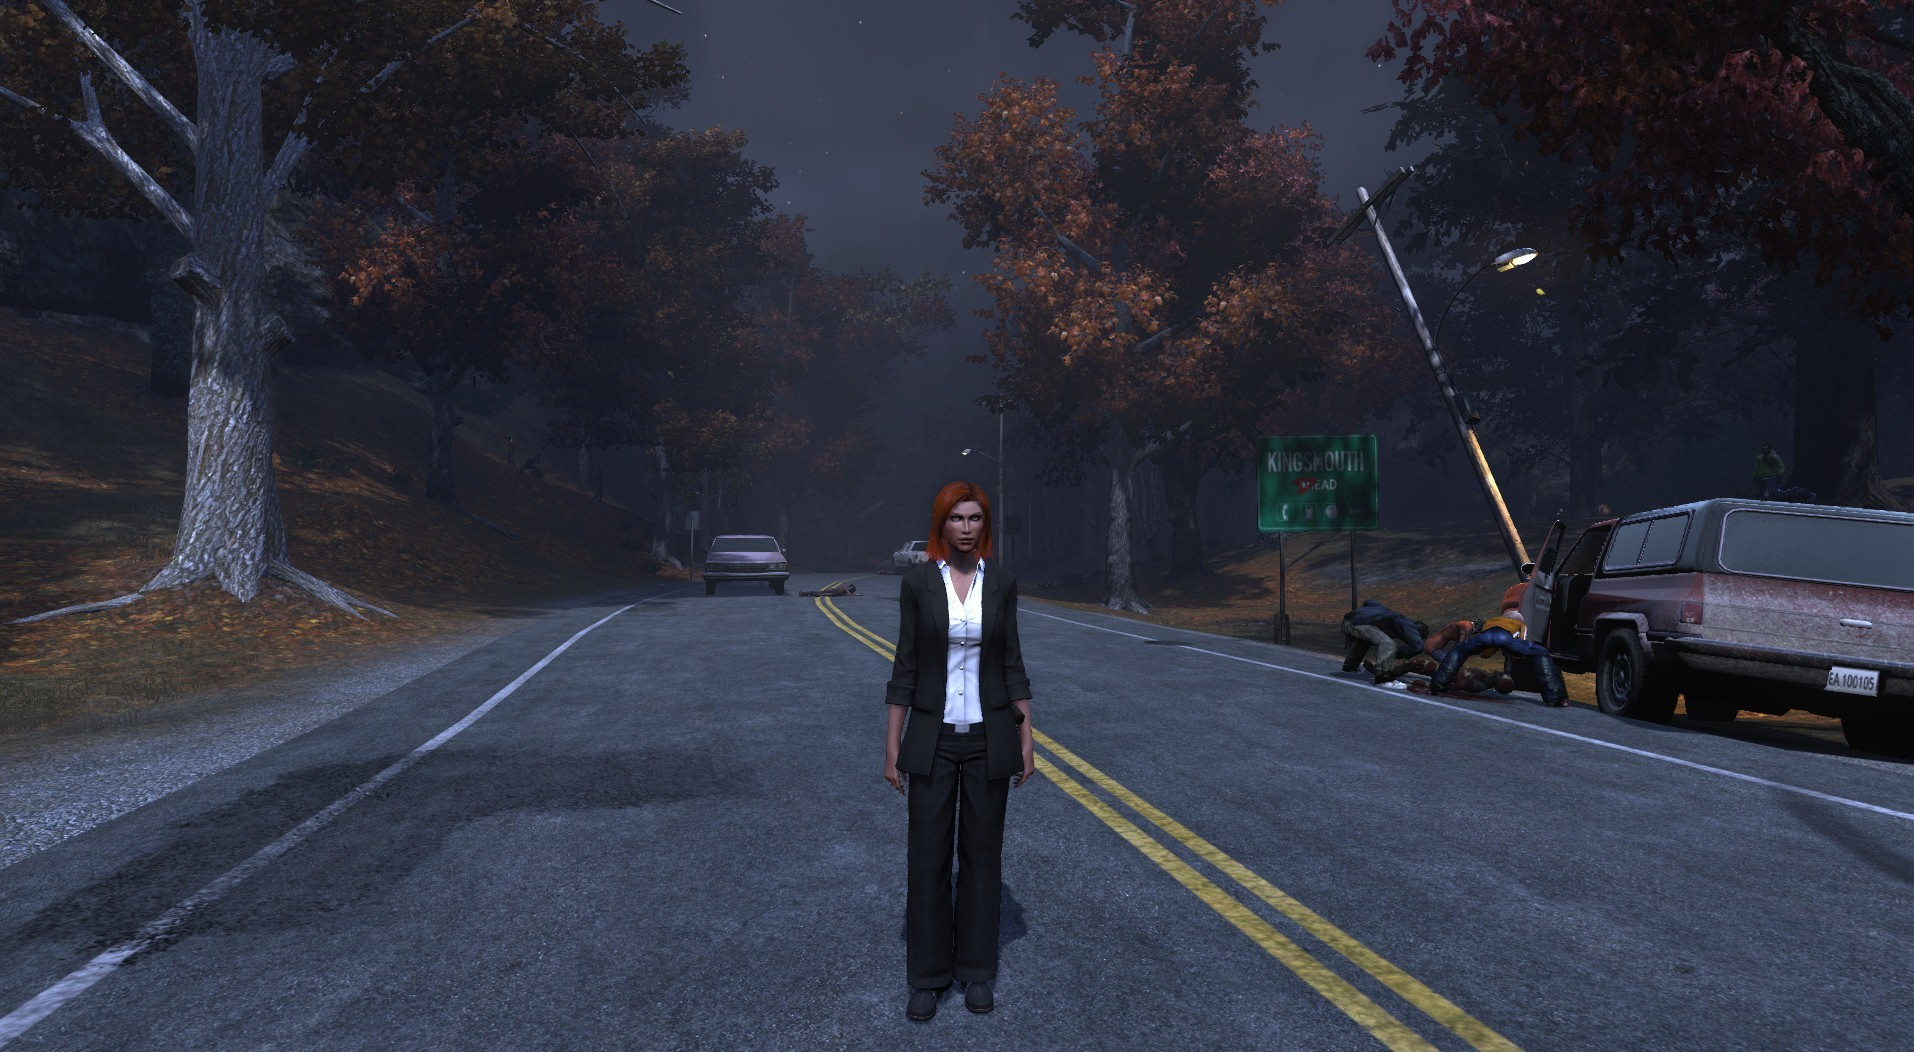 The Secret World - Agent Scully in The Secret World